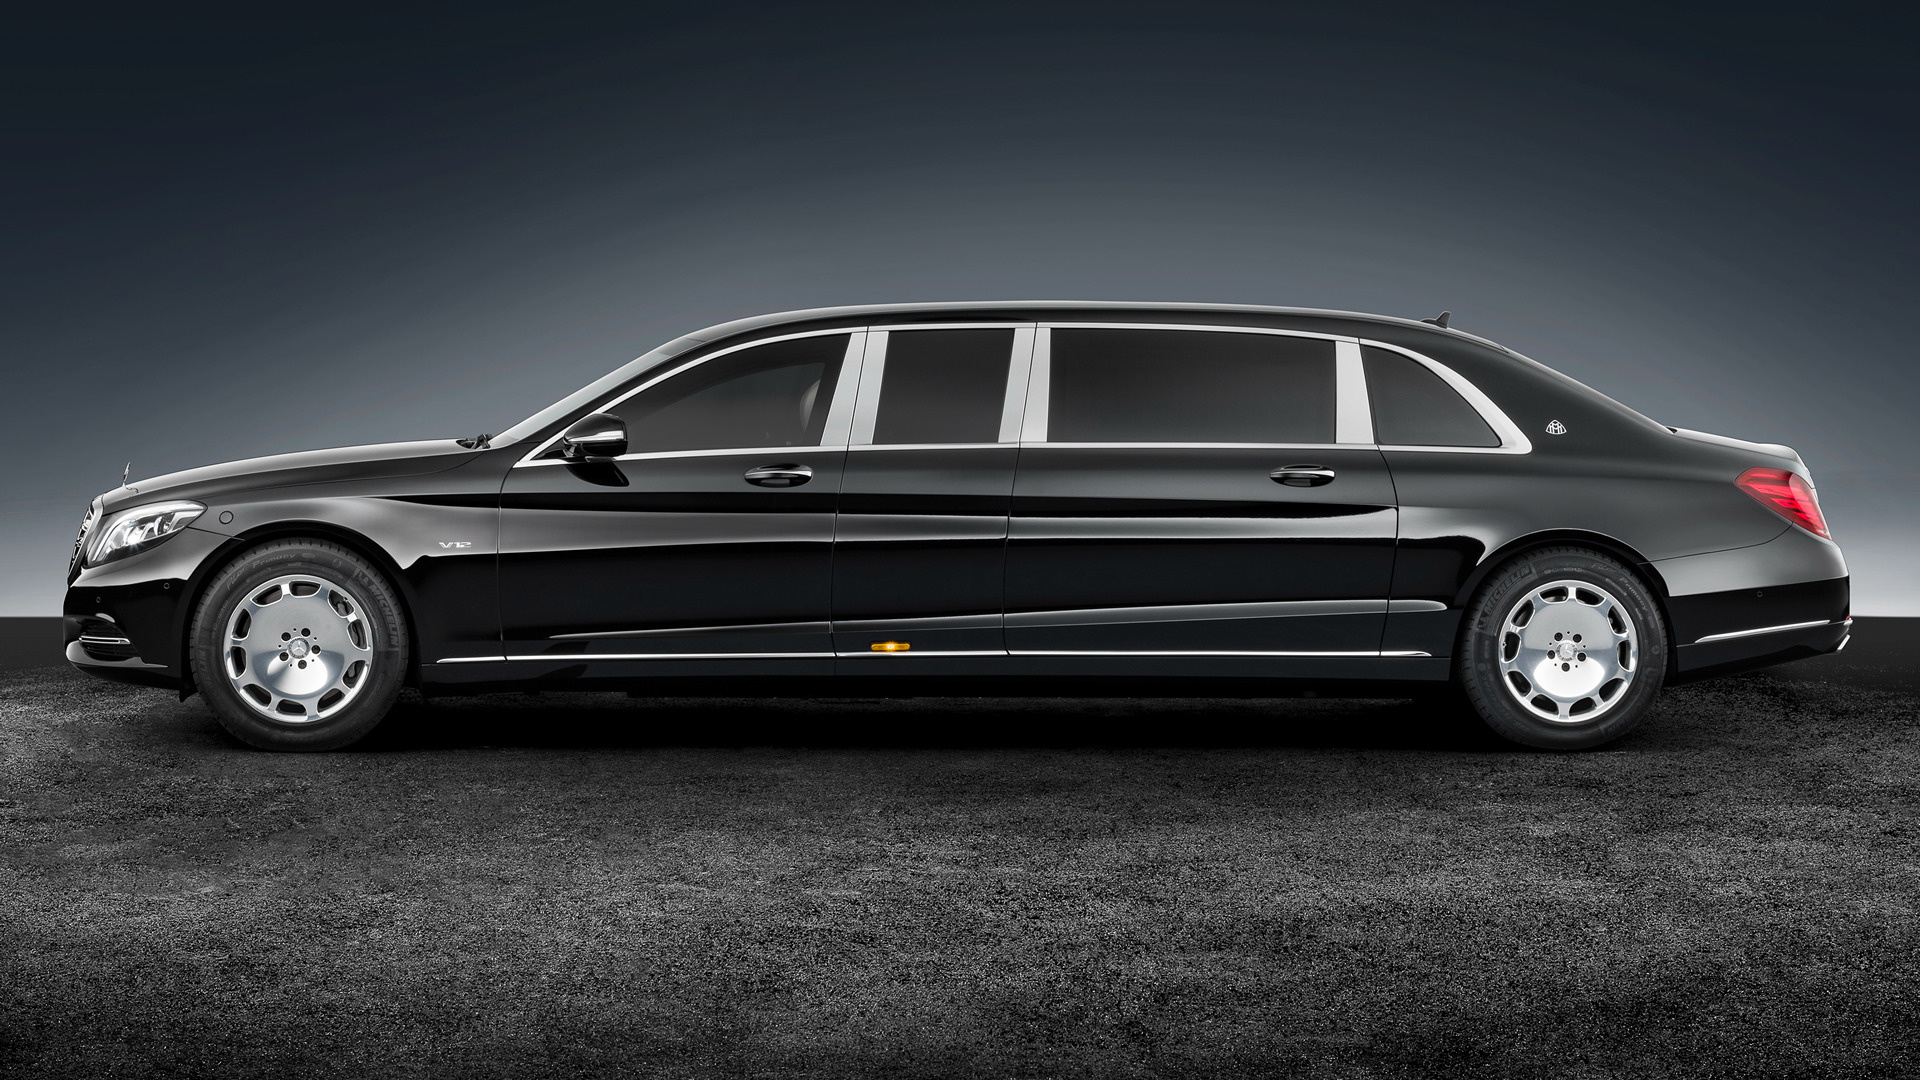 Toyota Of Pullman >> Mercedes-Maybach S-Class Pullman Guard (2016) Wallpapers and HD Images - Car Pixel